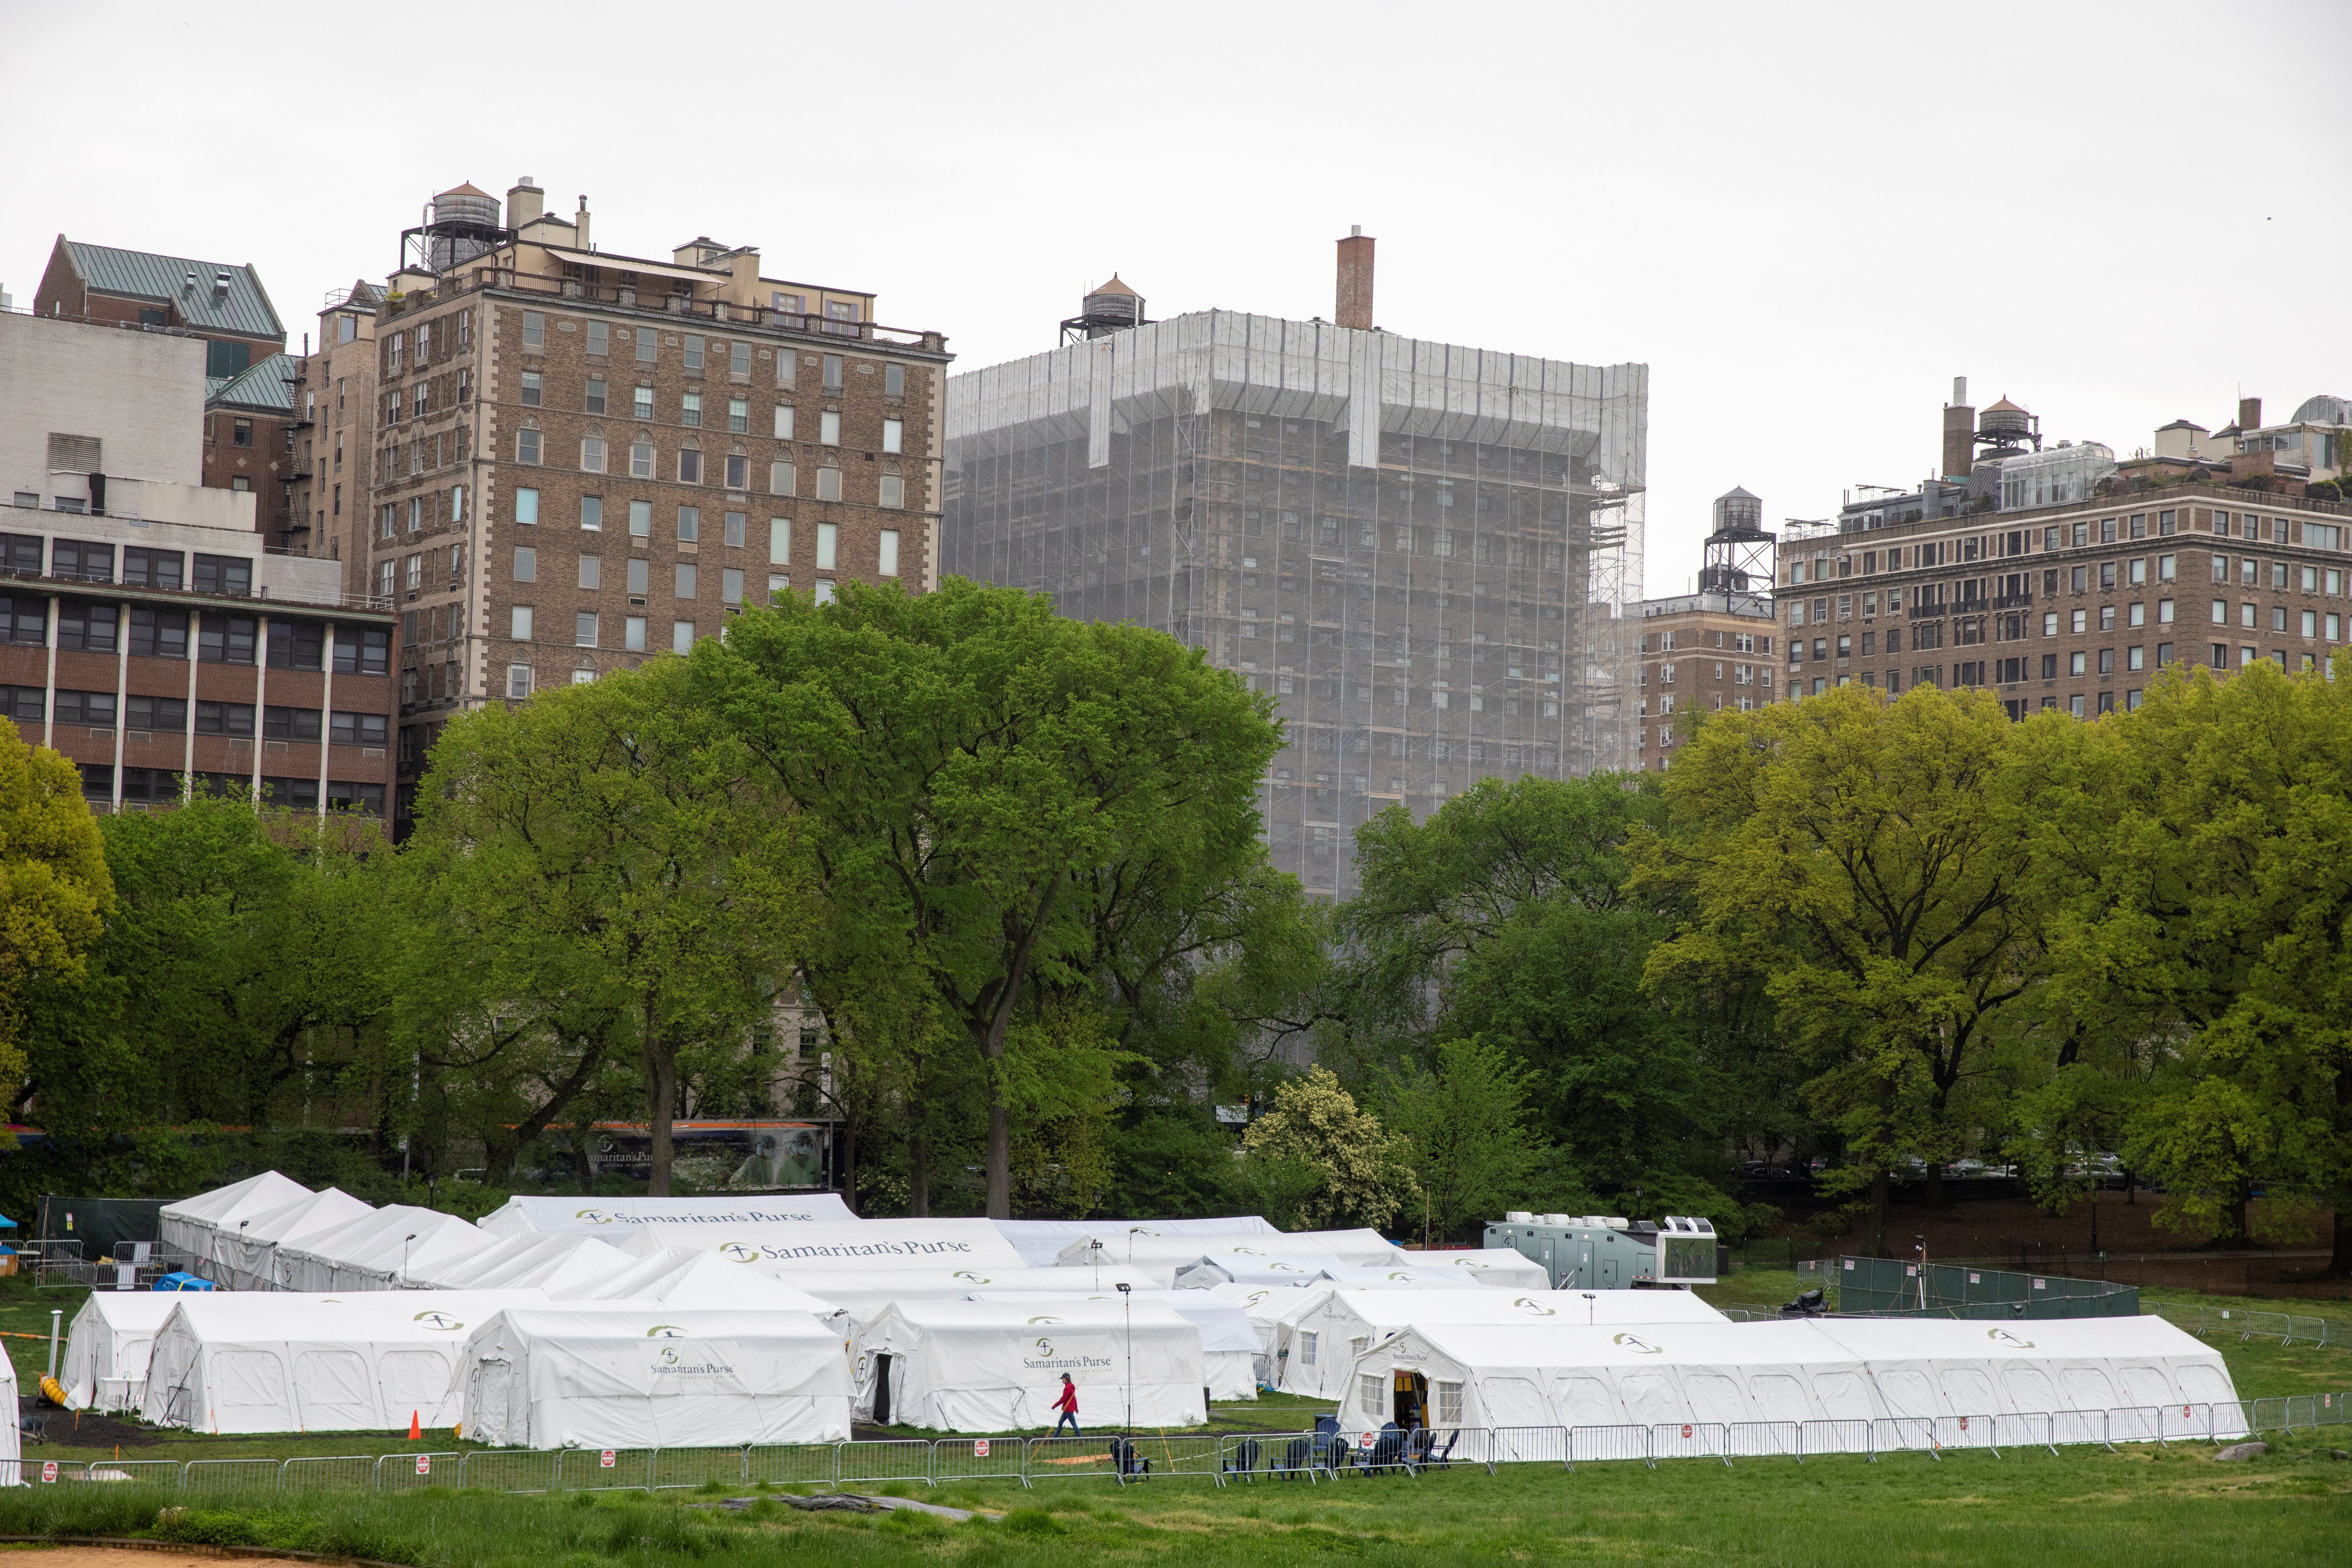 Samaritan's Purse Emergency Field Hospital in Central Park in New York U.S., May 8, 2020. REUTERS/Lucas Jackson